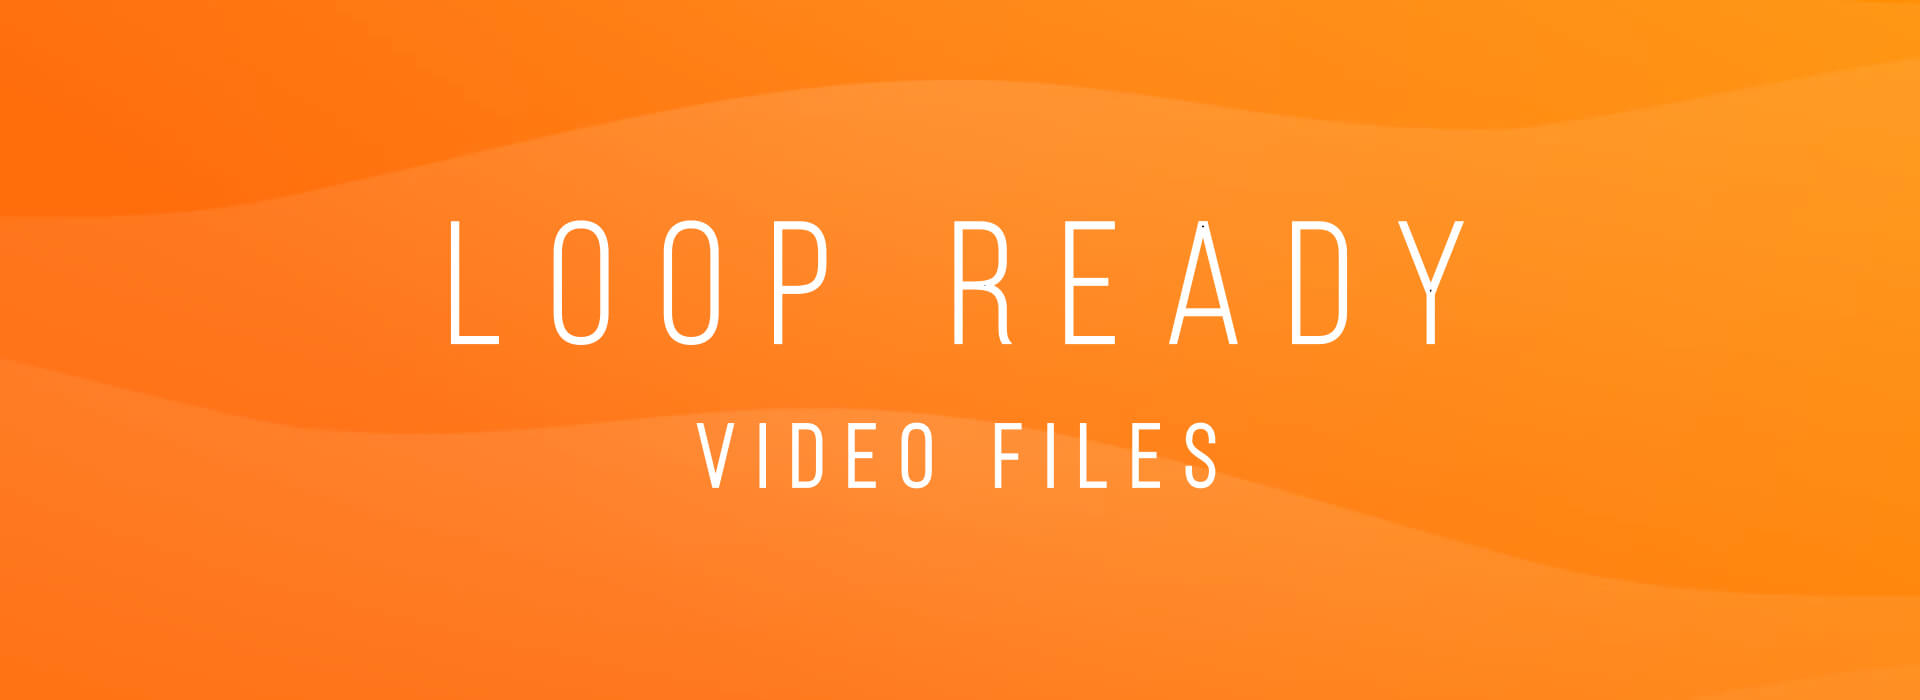 Loop ready animated video backgrounds gradients